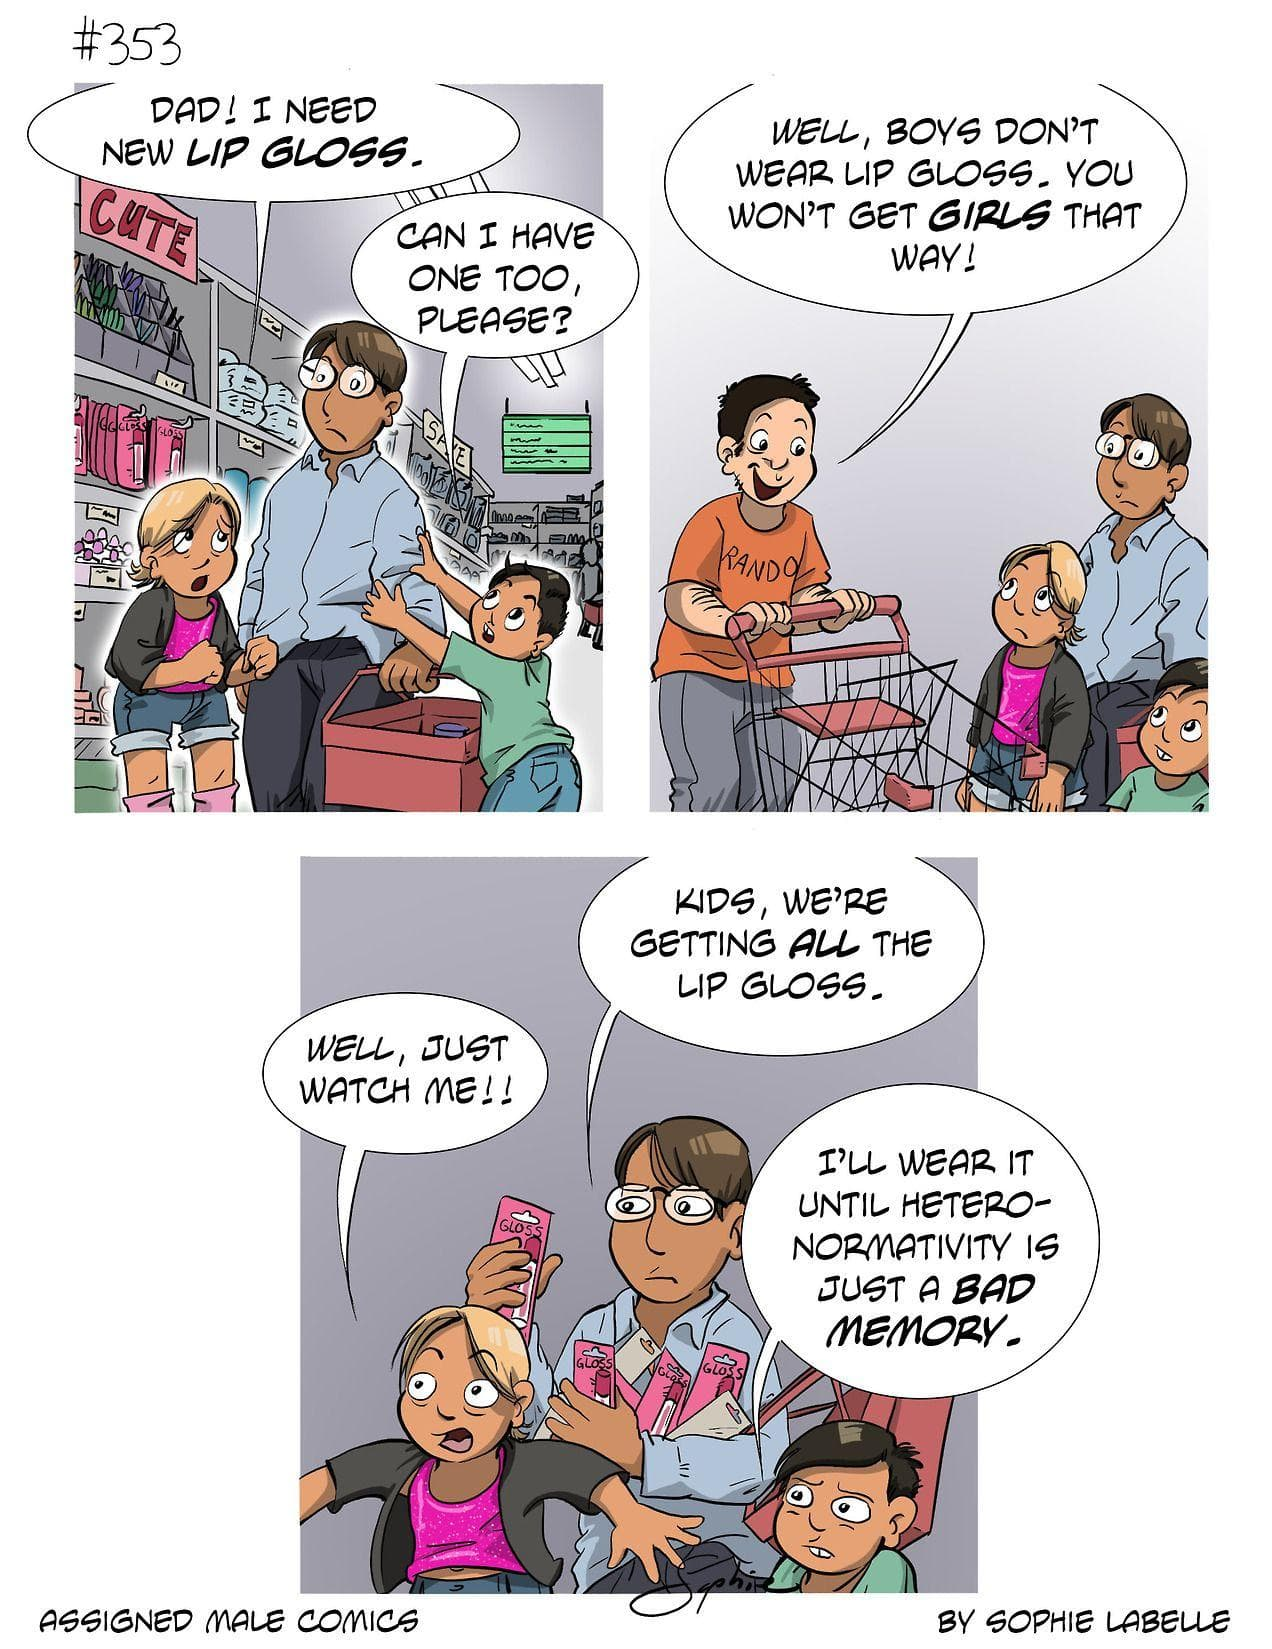 Random Eye-Opening Comics About Being Trans Created by This Artist